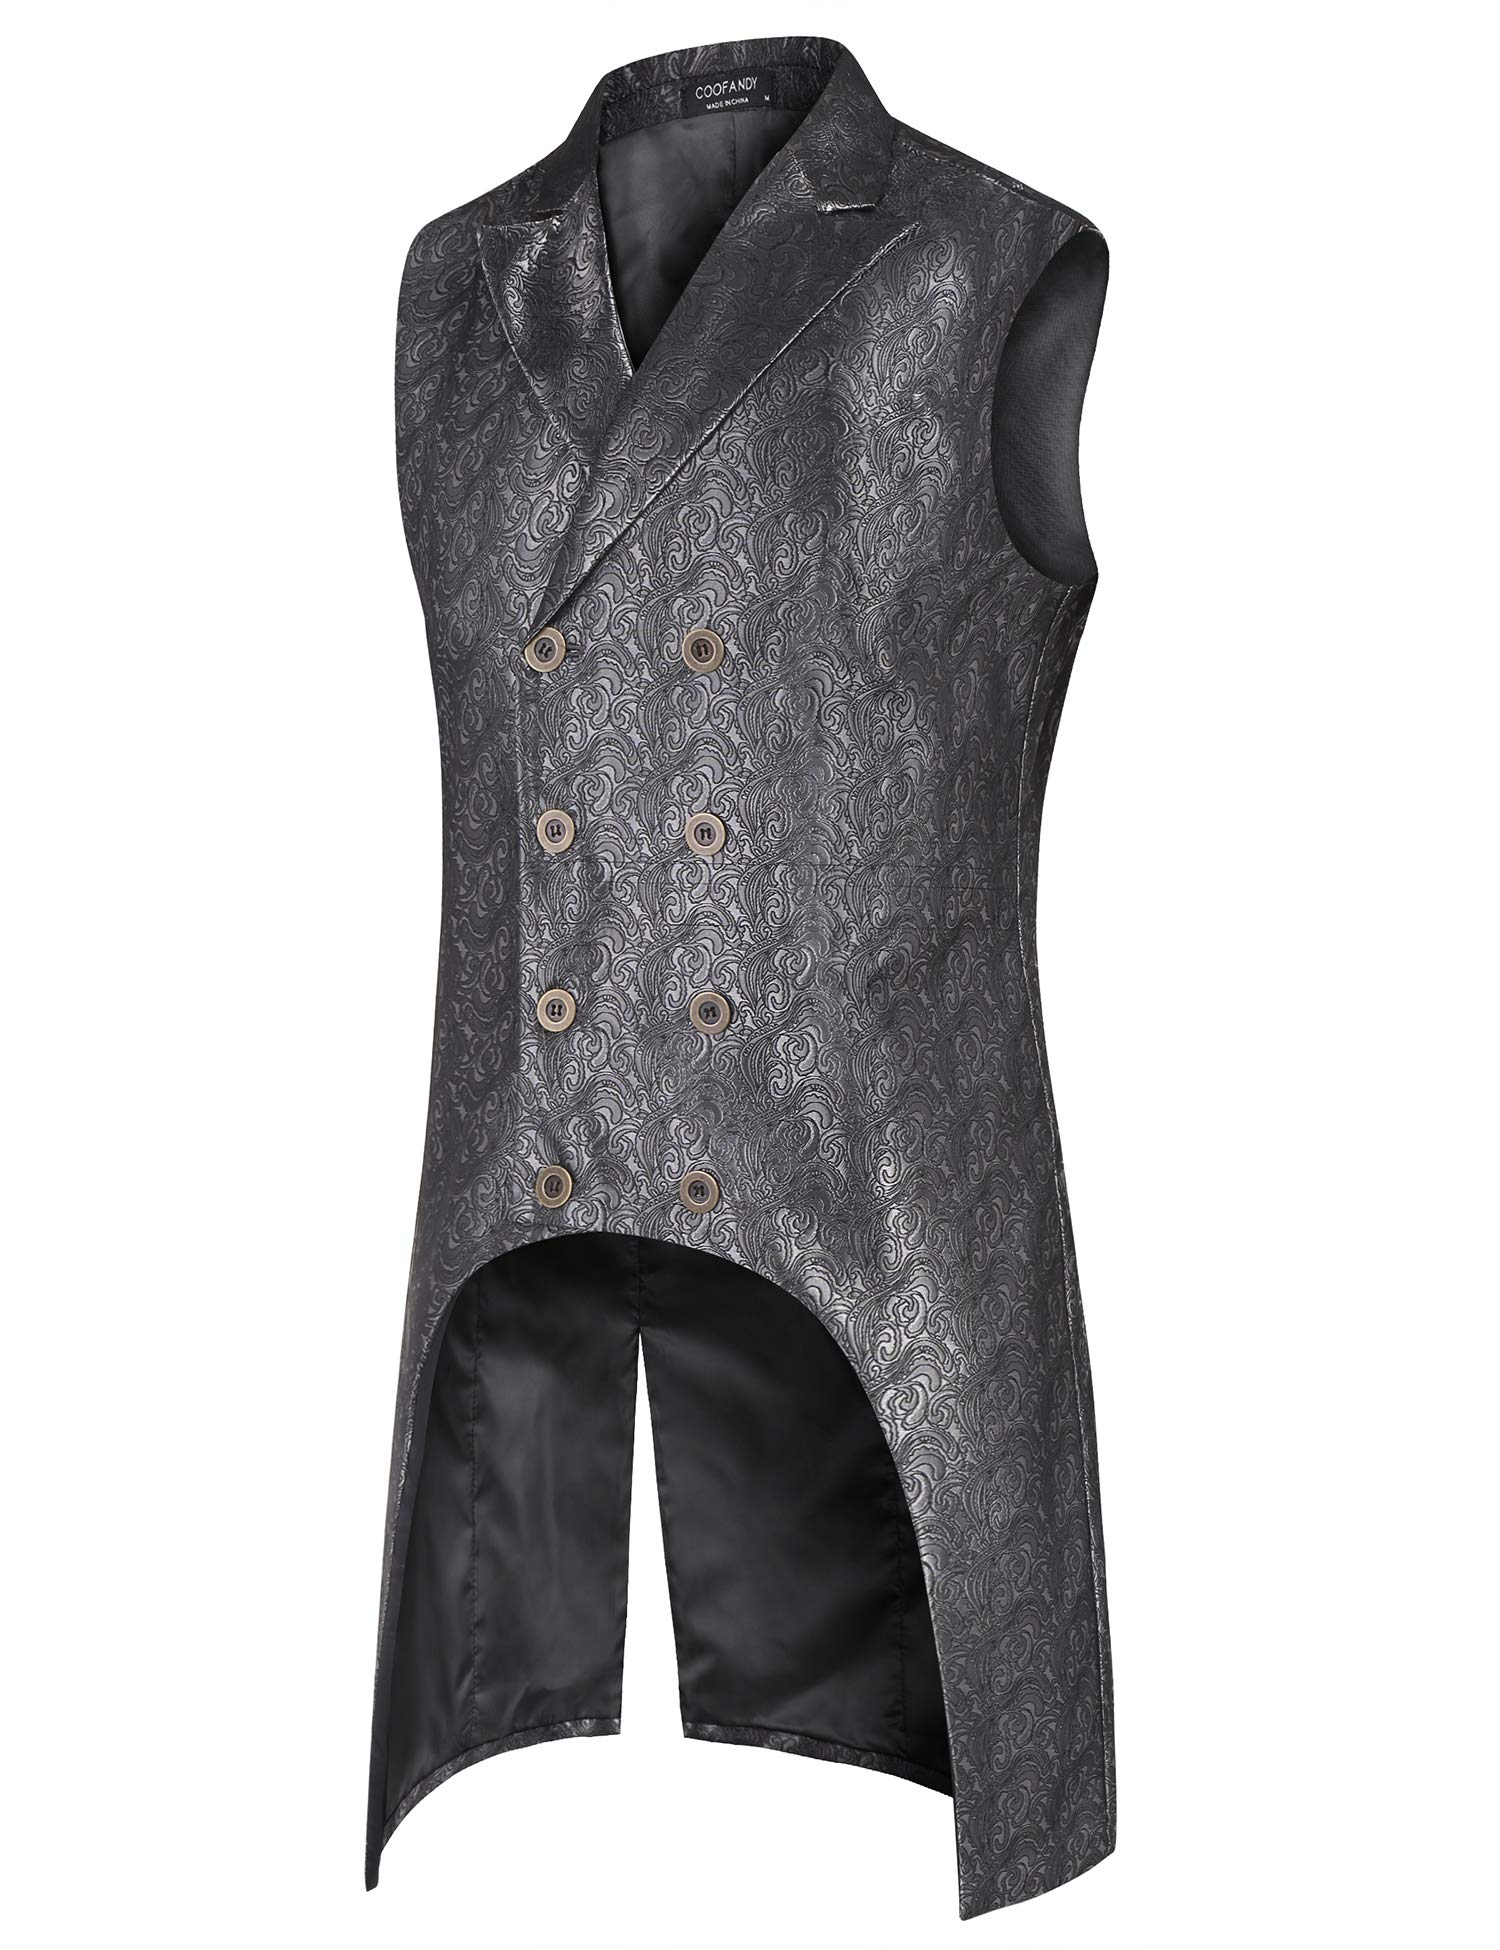 COOFANDY Mens Gothic Steampunk Vest Slim Fit Sleeveless Tailcoat Jacquard Brocade Double Breasted Waistcoat 4